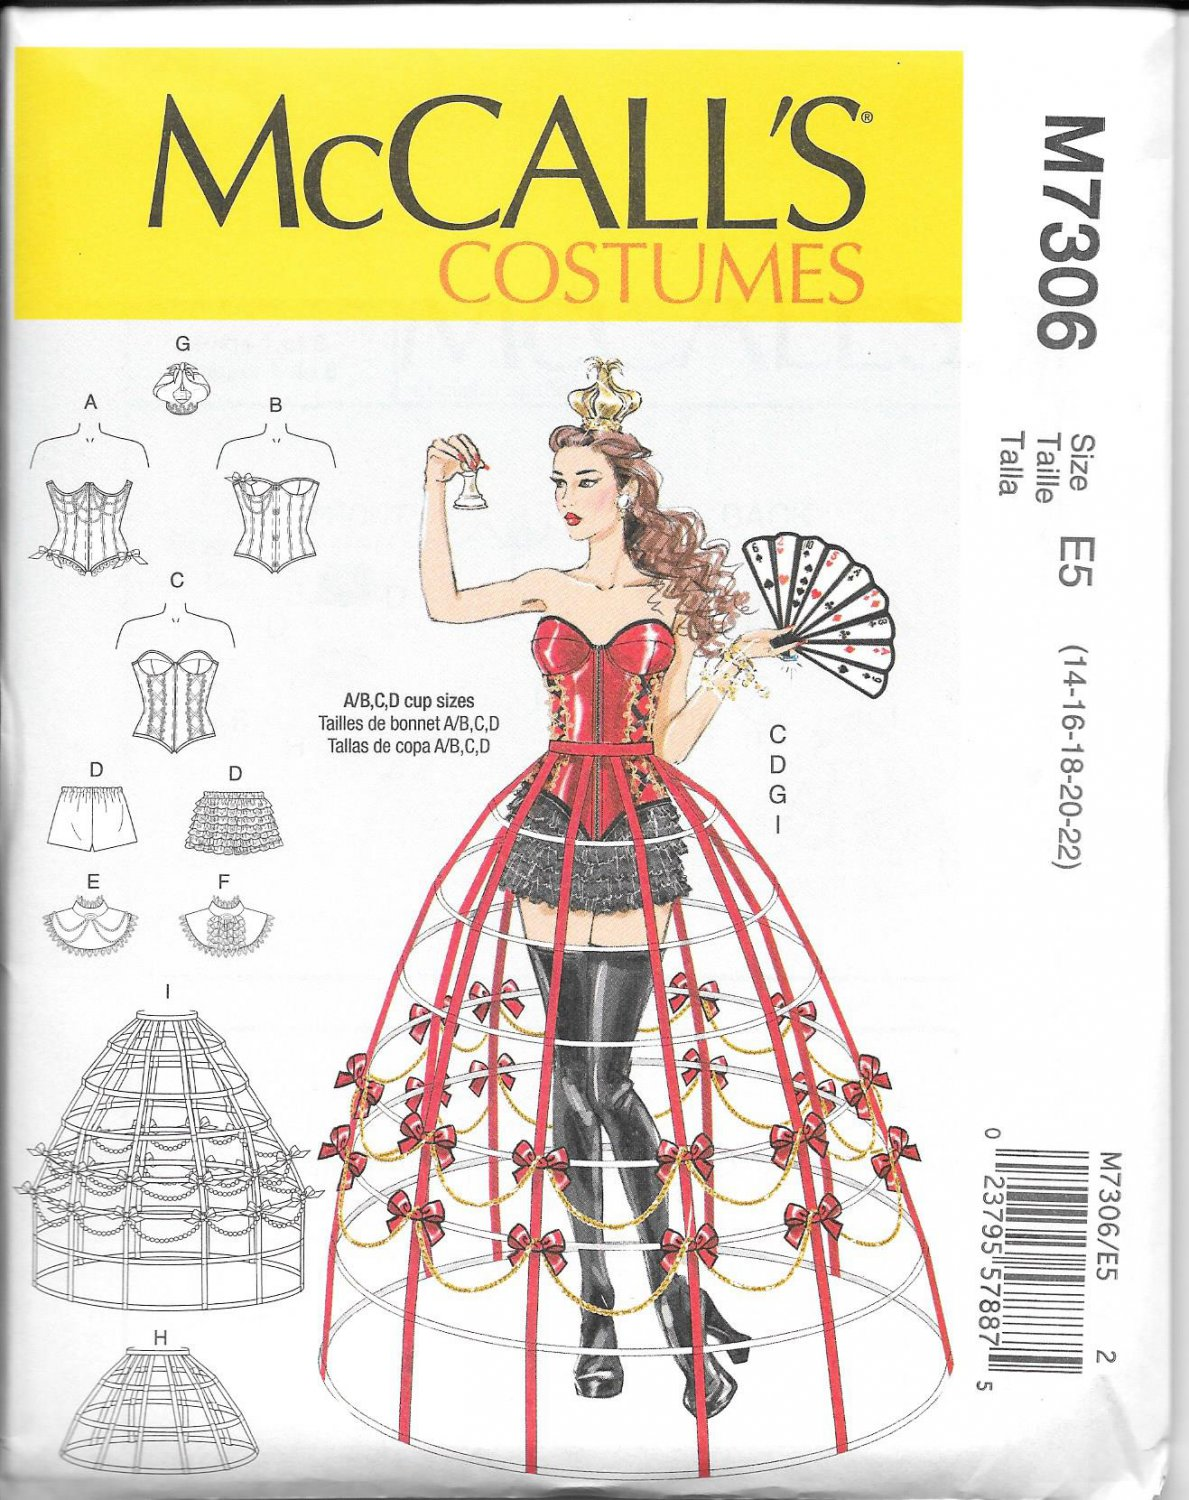 McCall's M7306 Corset Hoop Skirt Sizes 14, 16, 18, 20, 22 Costume Pattern